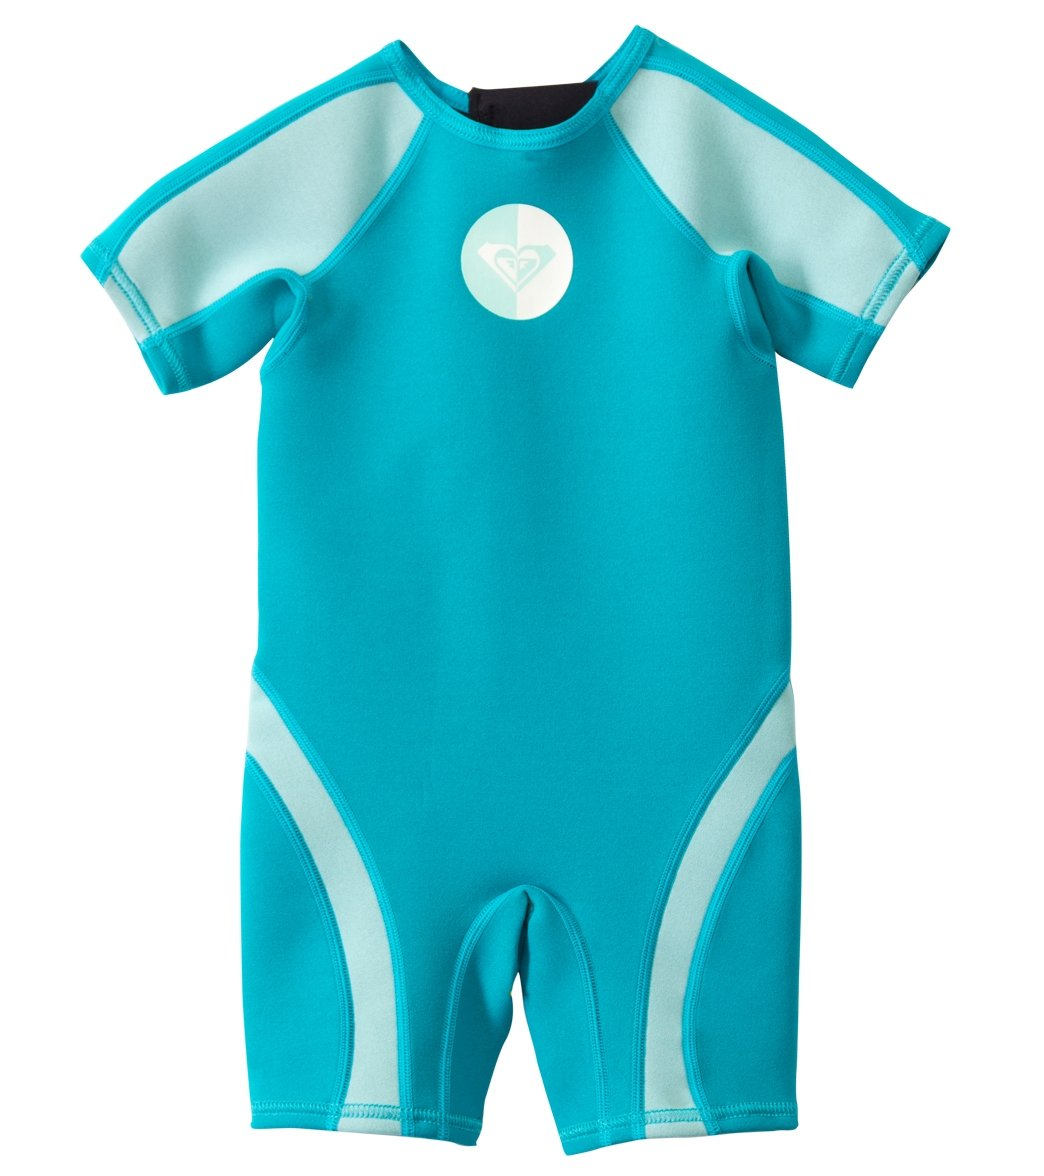 dcd700561c ... Roxy Toddler Syncro 1.5mm Short Sleeve Spring Suit Wetsuit. Share